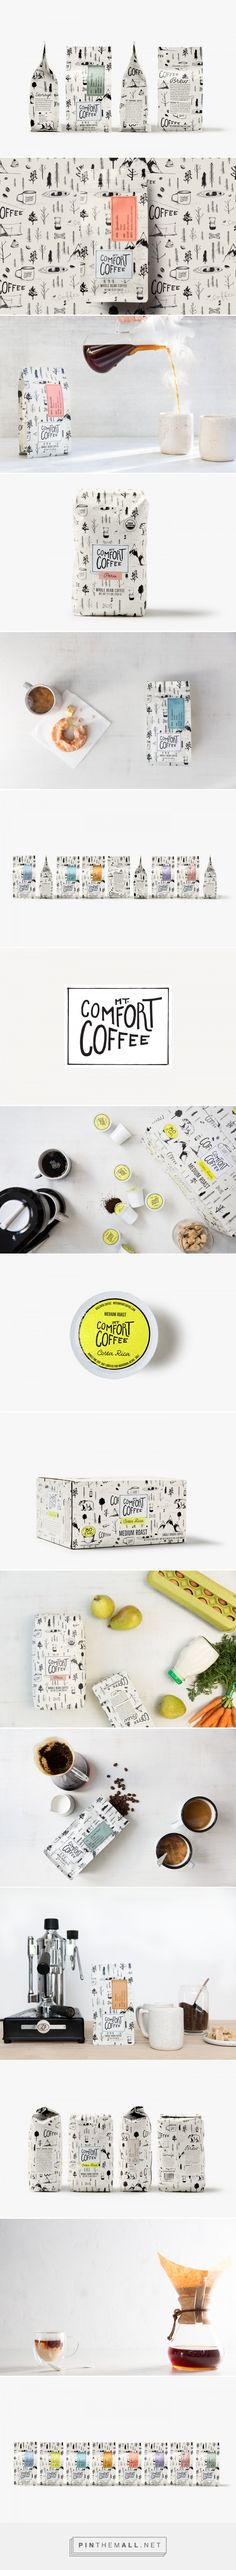 Mt. Comfort Coffee Packaging by Nicole LaFave